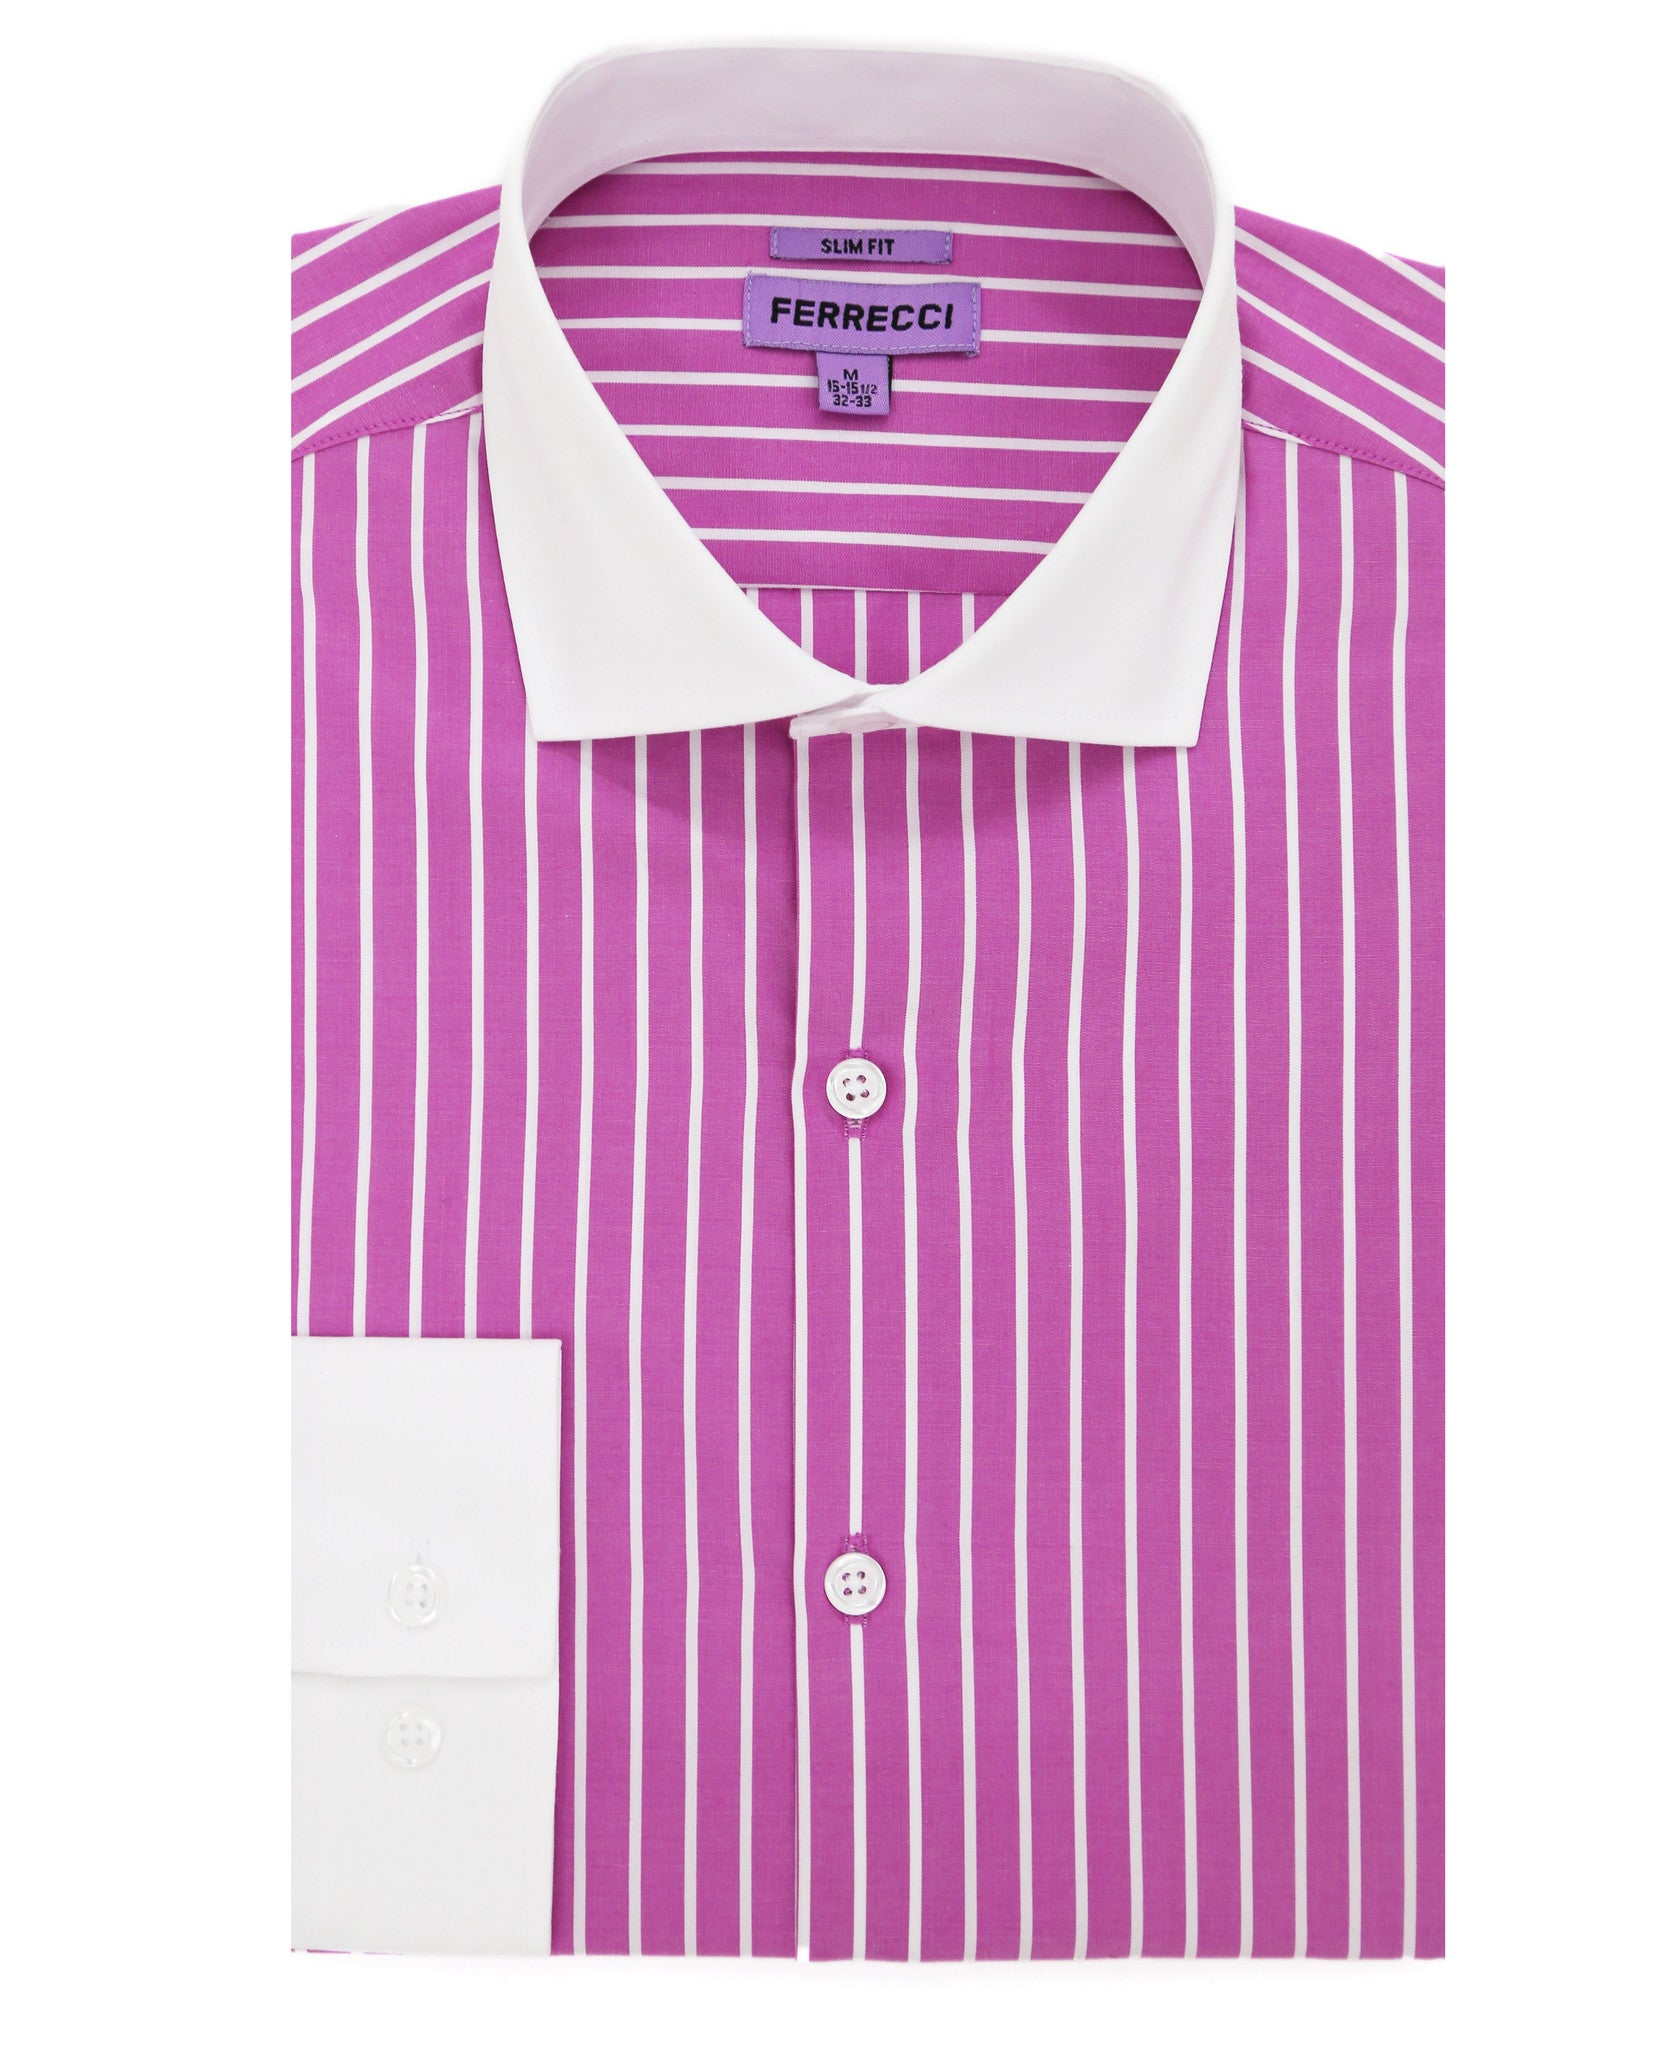 The London Striped Slim Fit Cotton Dress Shirt